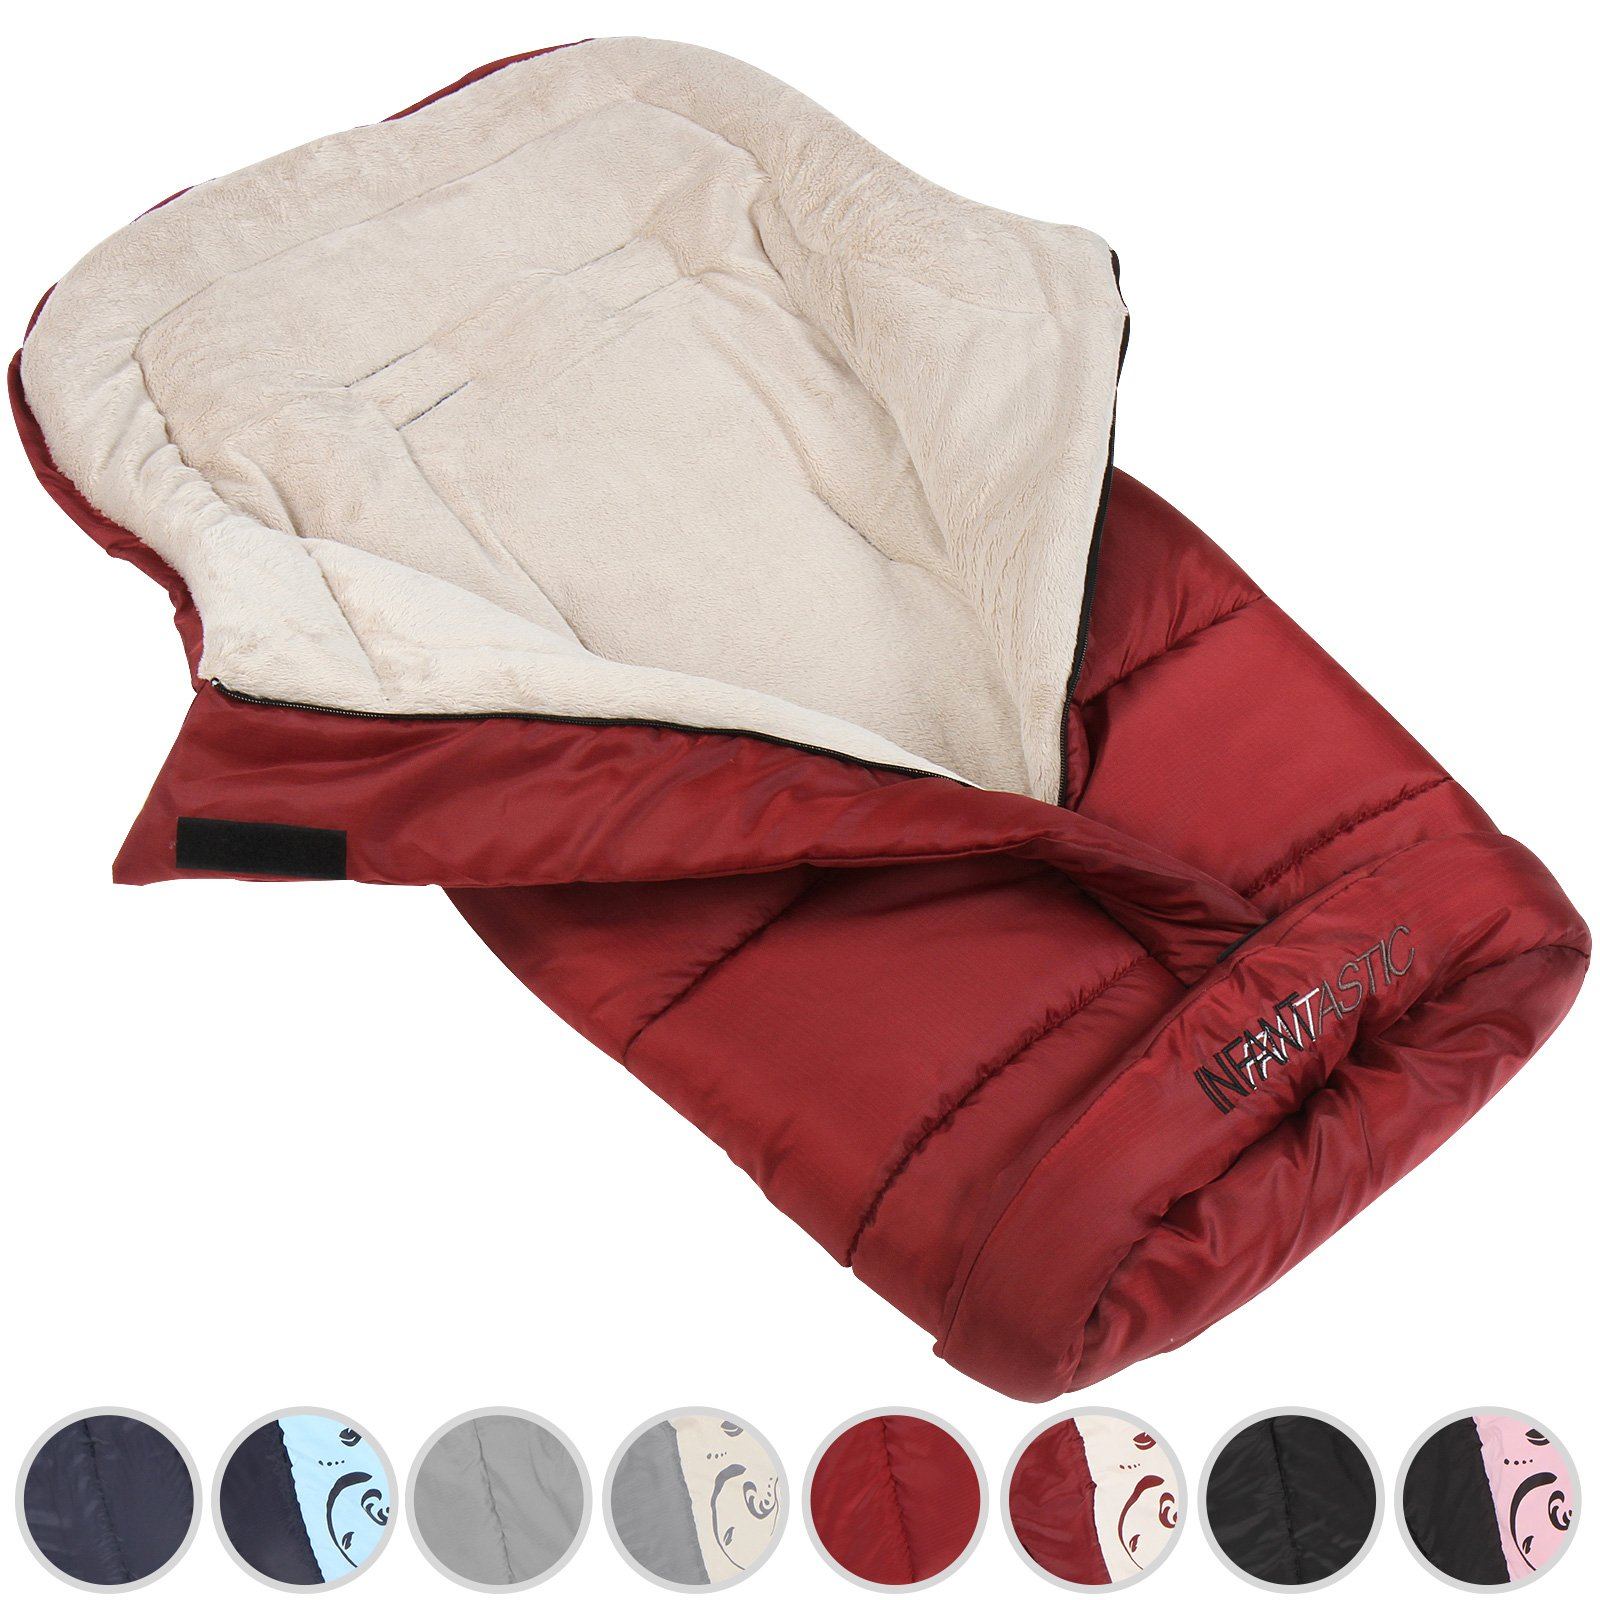 Choice of Color : ca./120//50 cm Closed Baby Swaddle Blanket Stroller Wrap l//w : ca l//w 135//110 cm Sleeping Bags Opened Fleece-Winter Footmuff